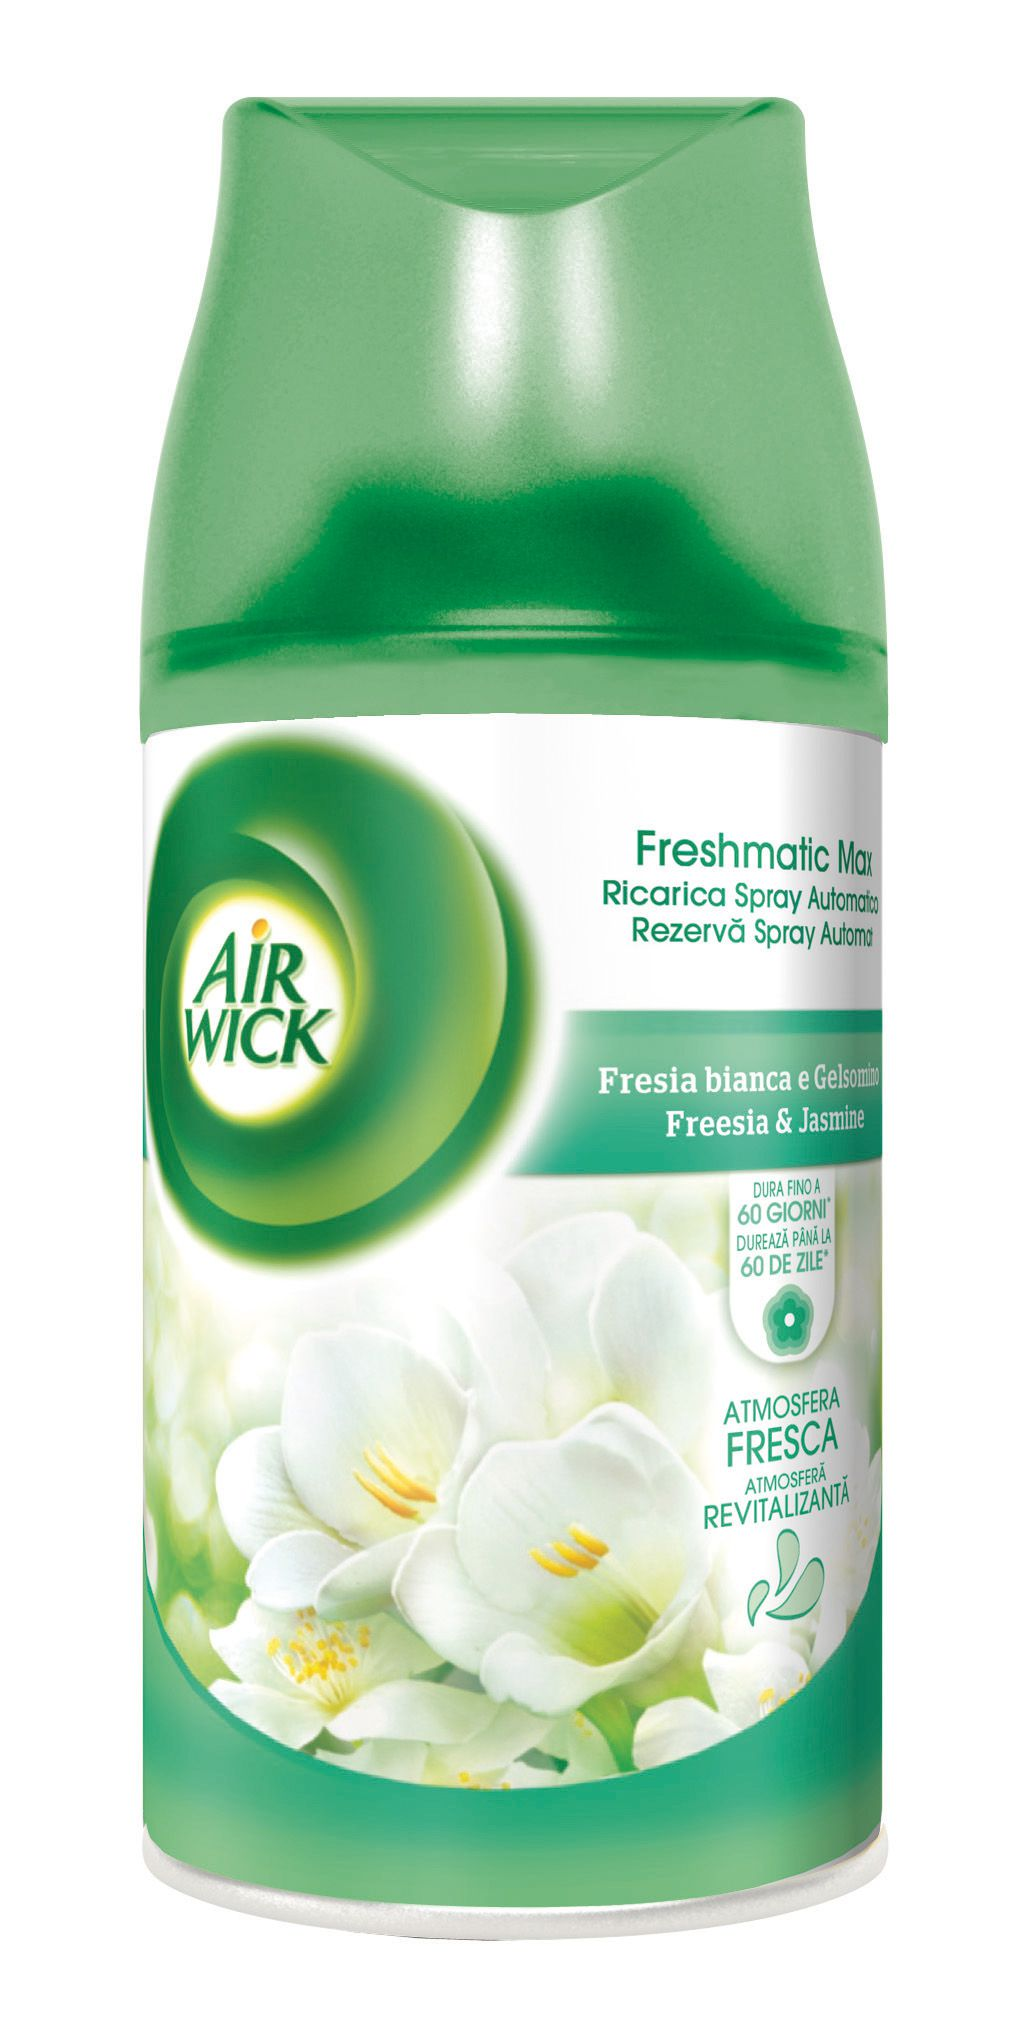 air wick freshmatic max ricarica